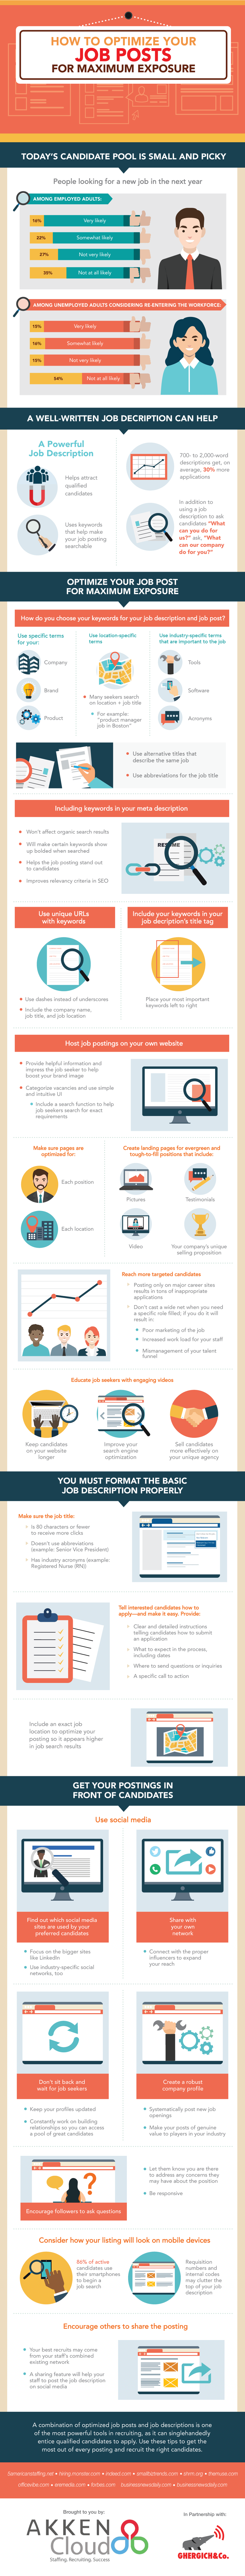 Infographic- How to Optimize Your Job Posts for Maximum Exposure